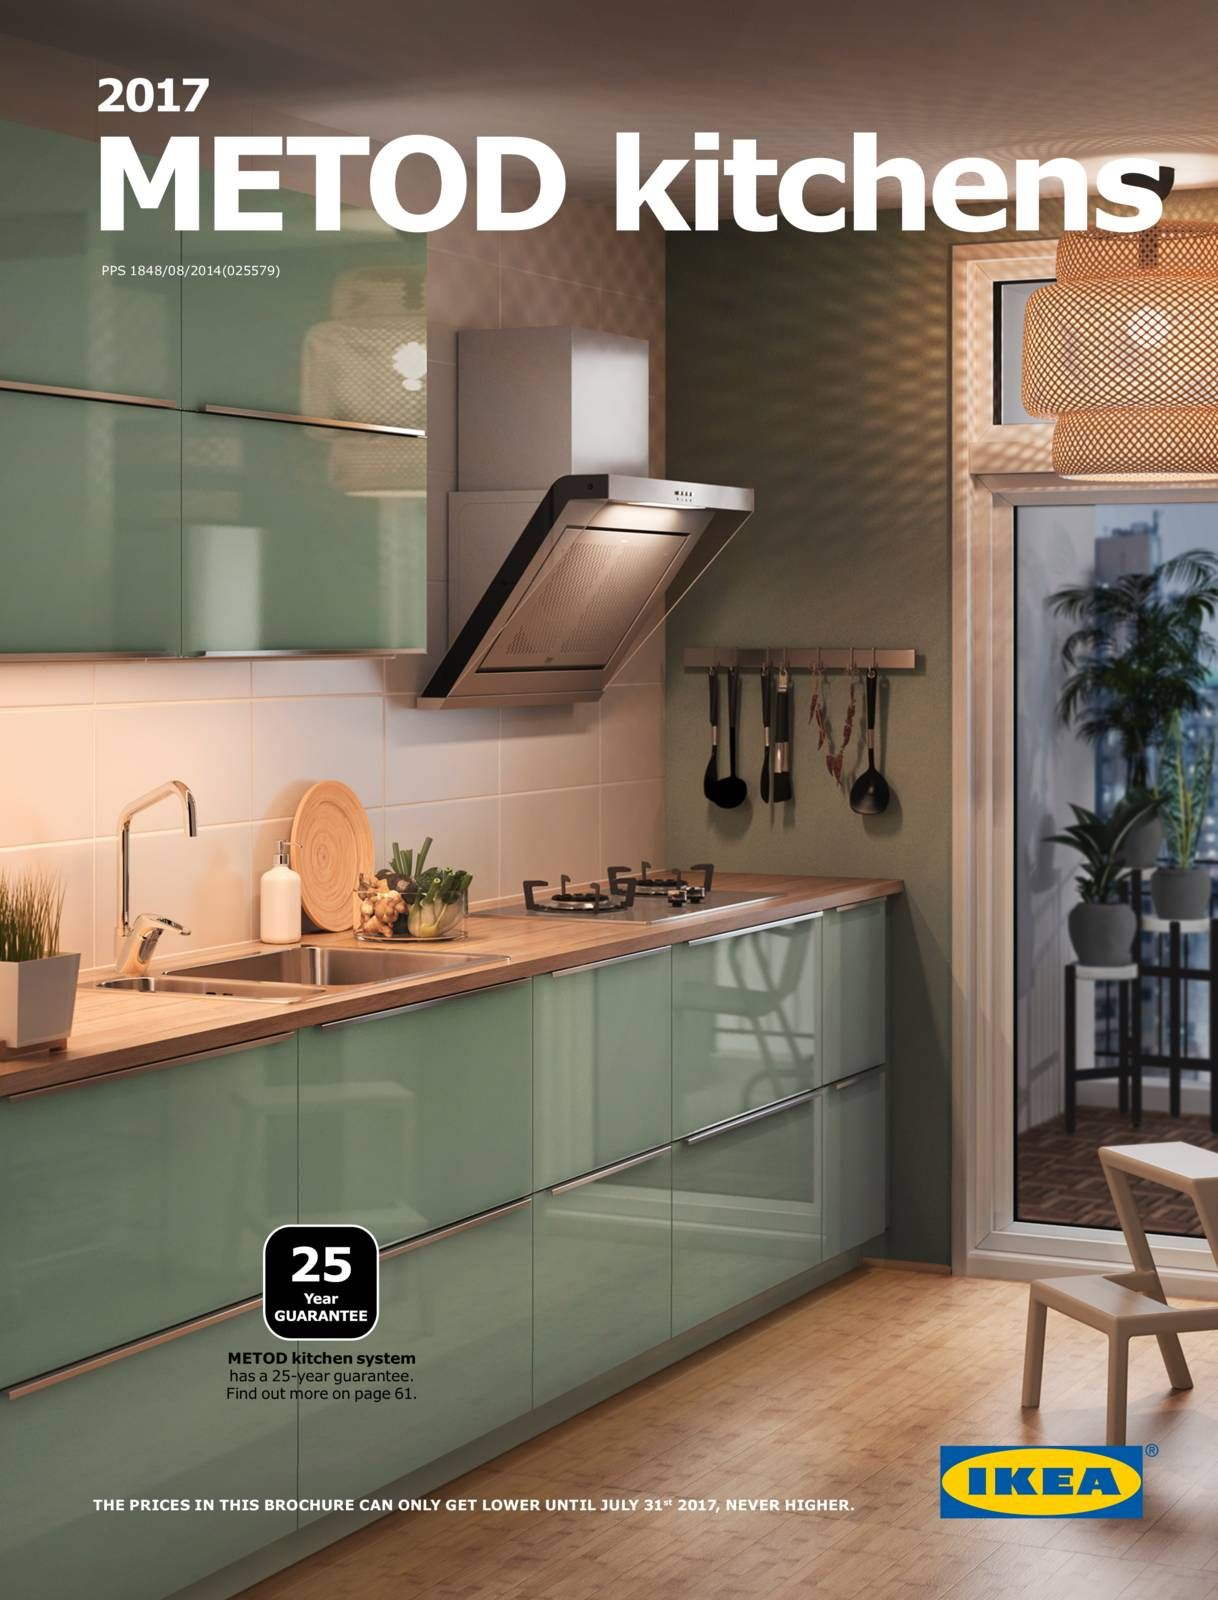 Küche Ikea Kallarp Image Result For Kallarp Kitchen Konyha In 2019 Küche